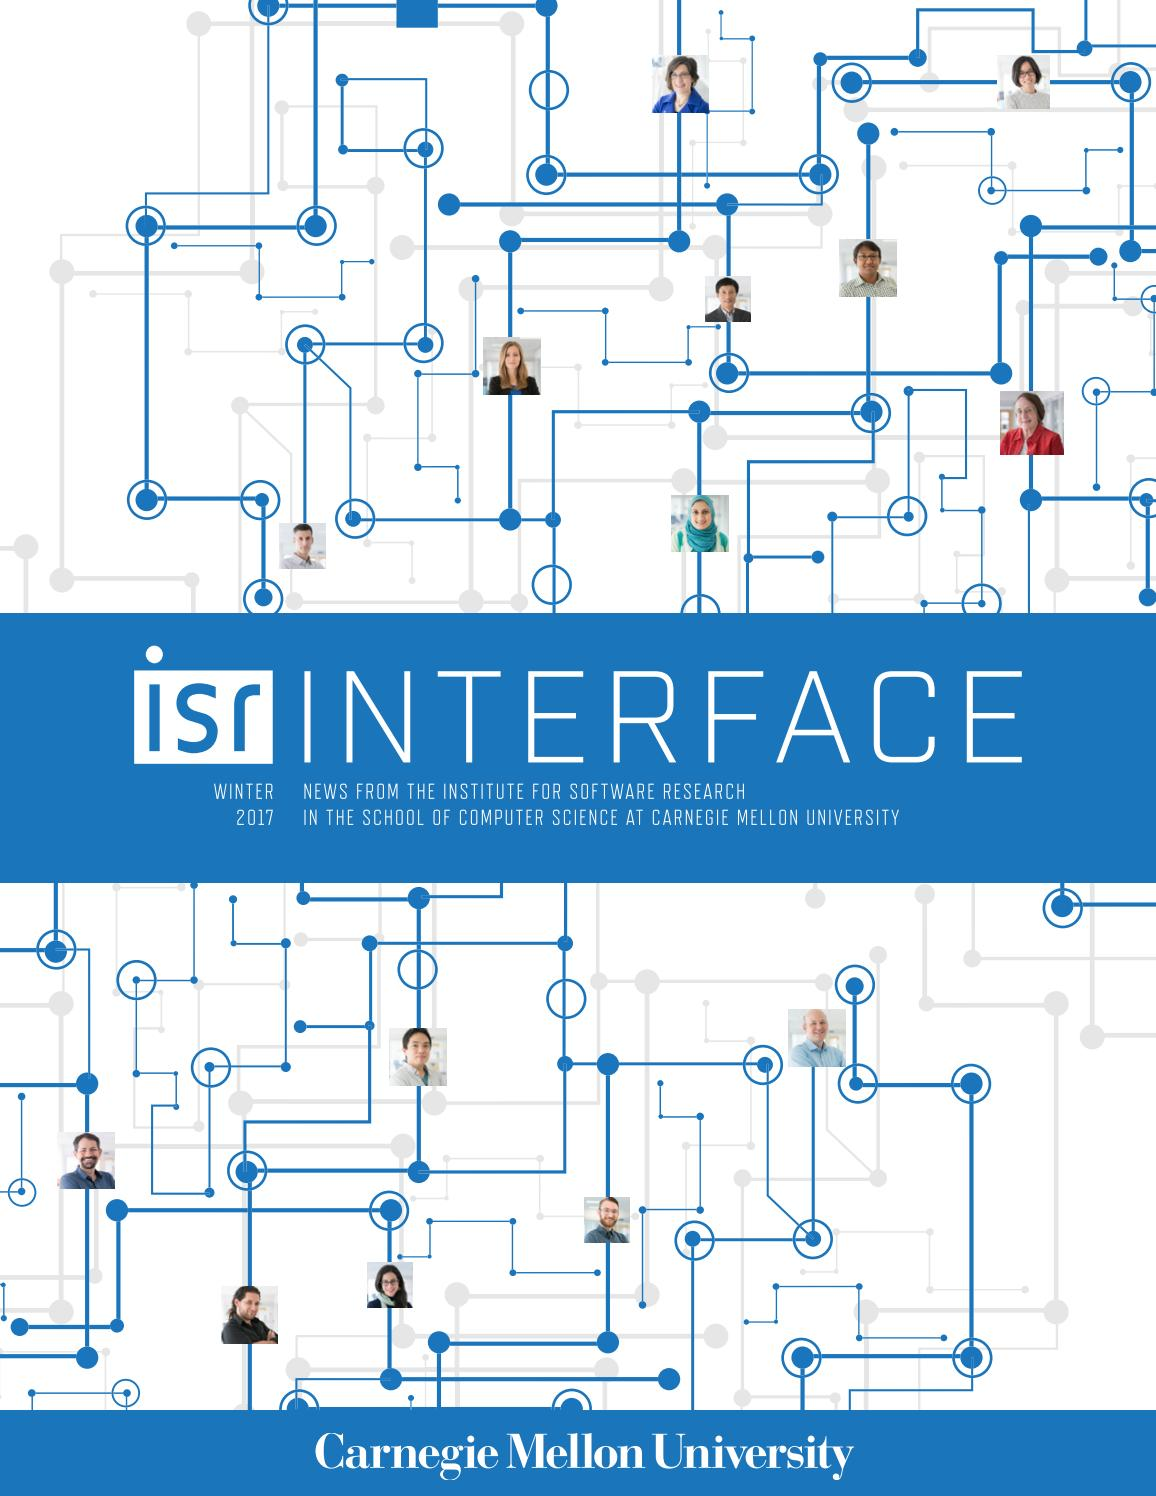 Isr Interface Winter 2017 By Institute For Software Research At Scientificcalculatorcircuitboardmadeinchinajpg Carnegie Mellon University Issuu